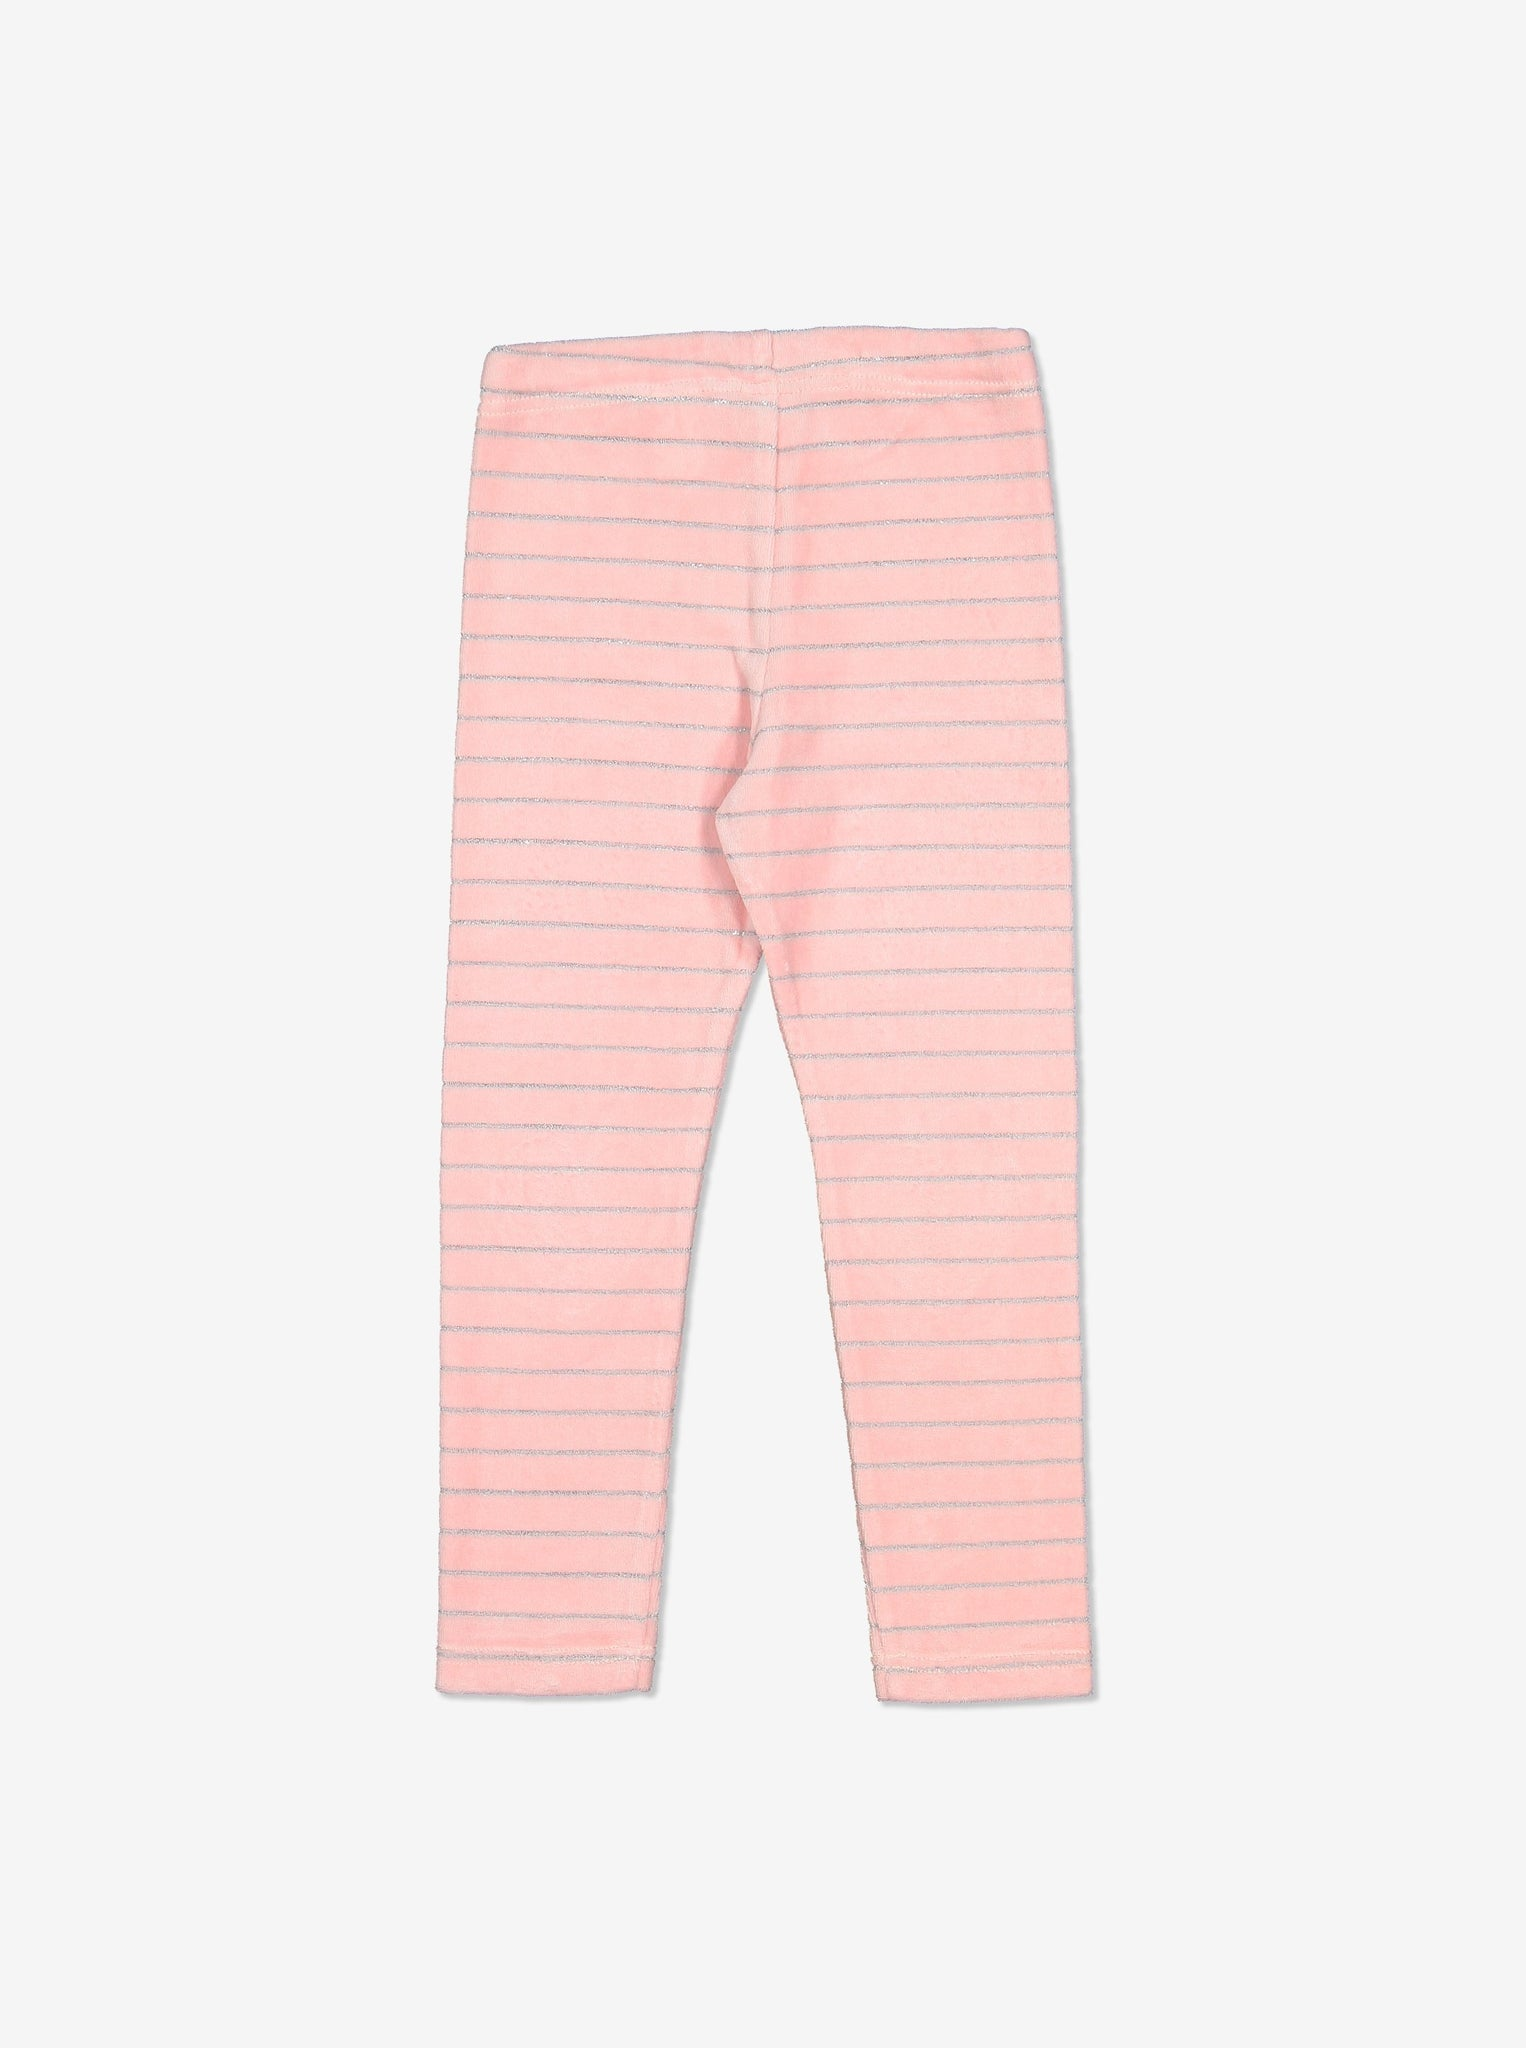 Girls Pink Glitter Stripe Kids velour leggings 1-6y